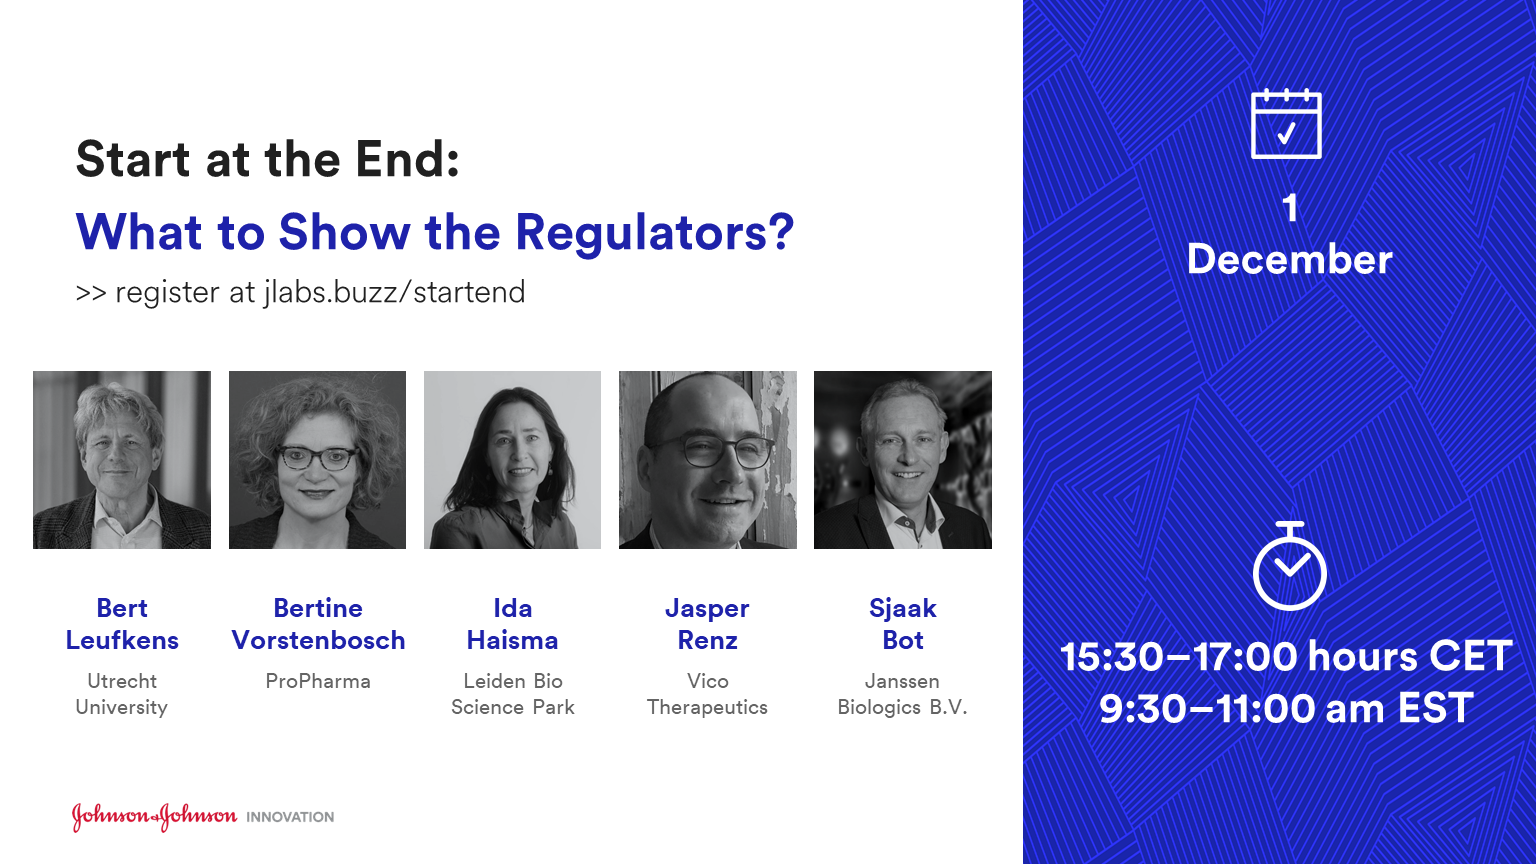 Start at the End: What to Show the Regulators?